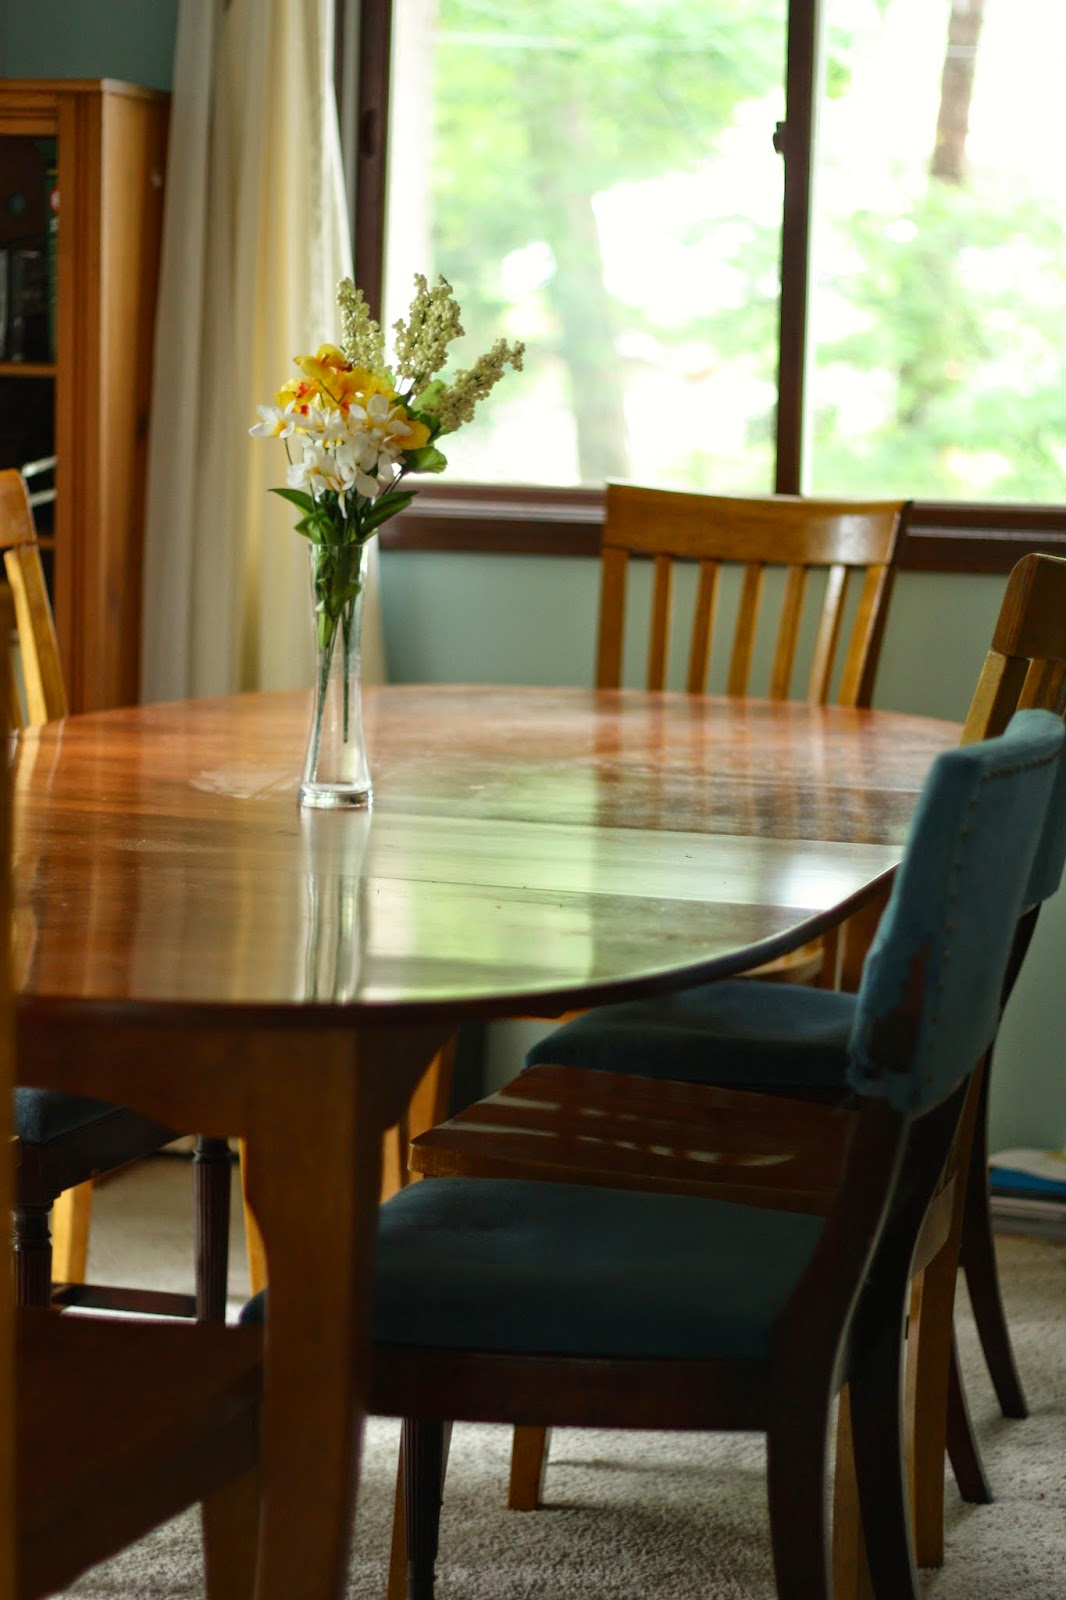 Dining room table with window behind it